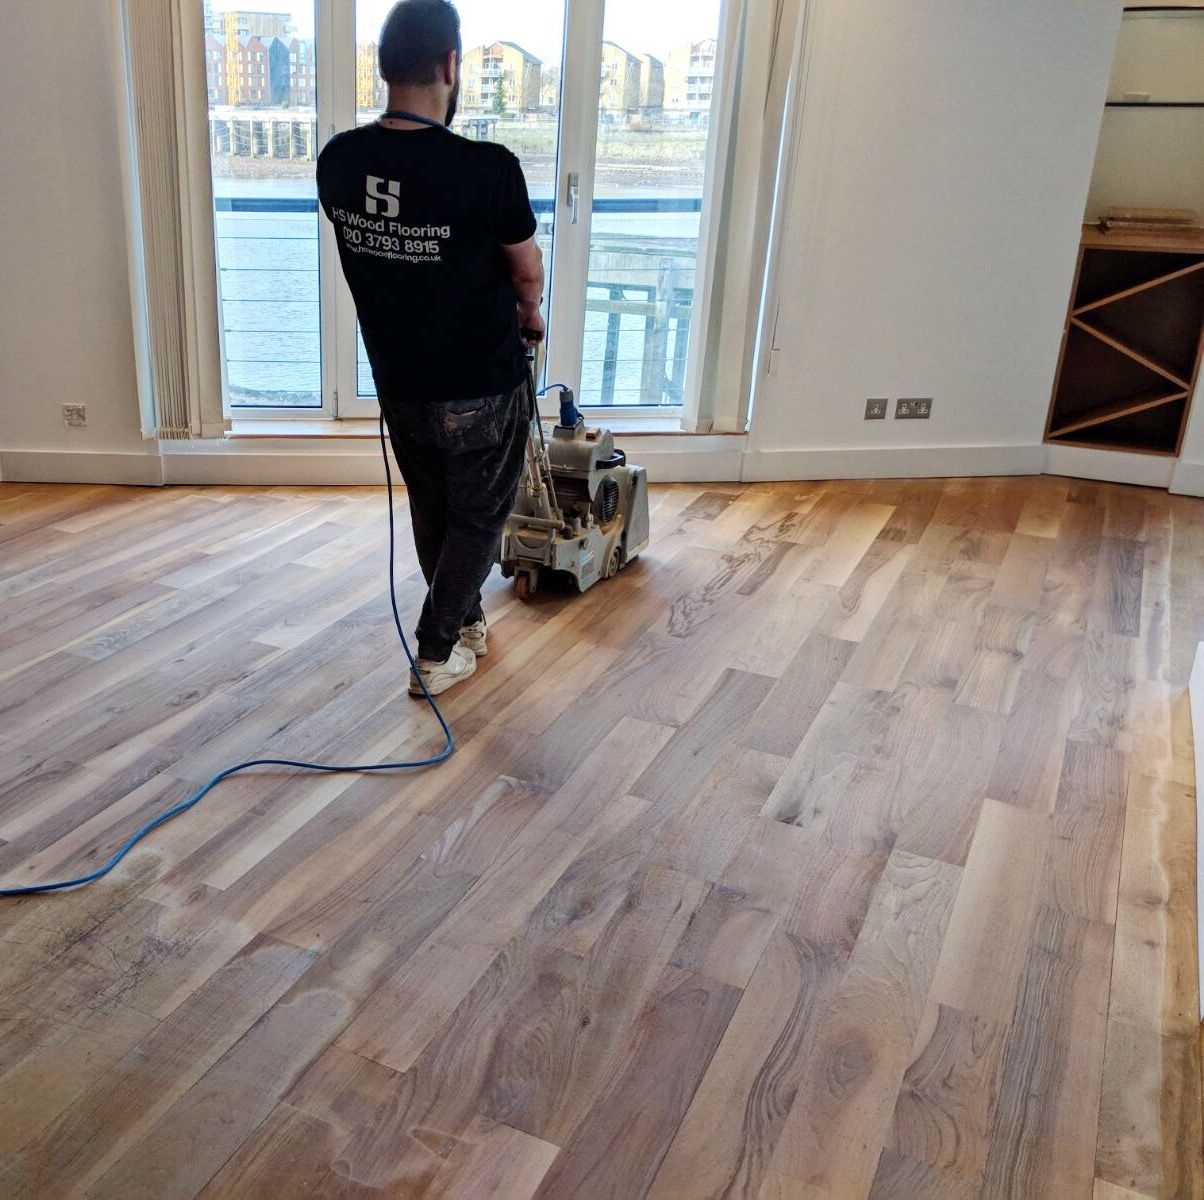 Wooden Floor Revamp Step 2 Floor Stripping Flooring Flooring Companies Floor Installation